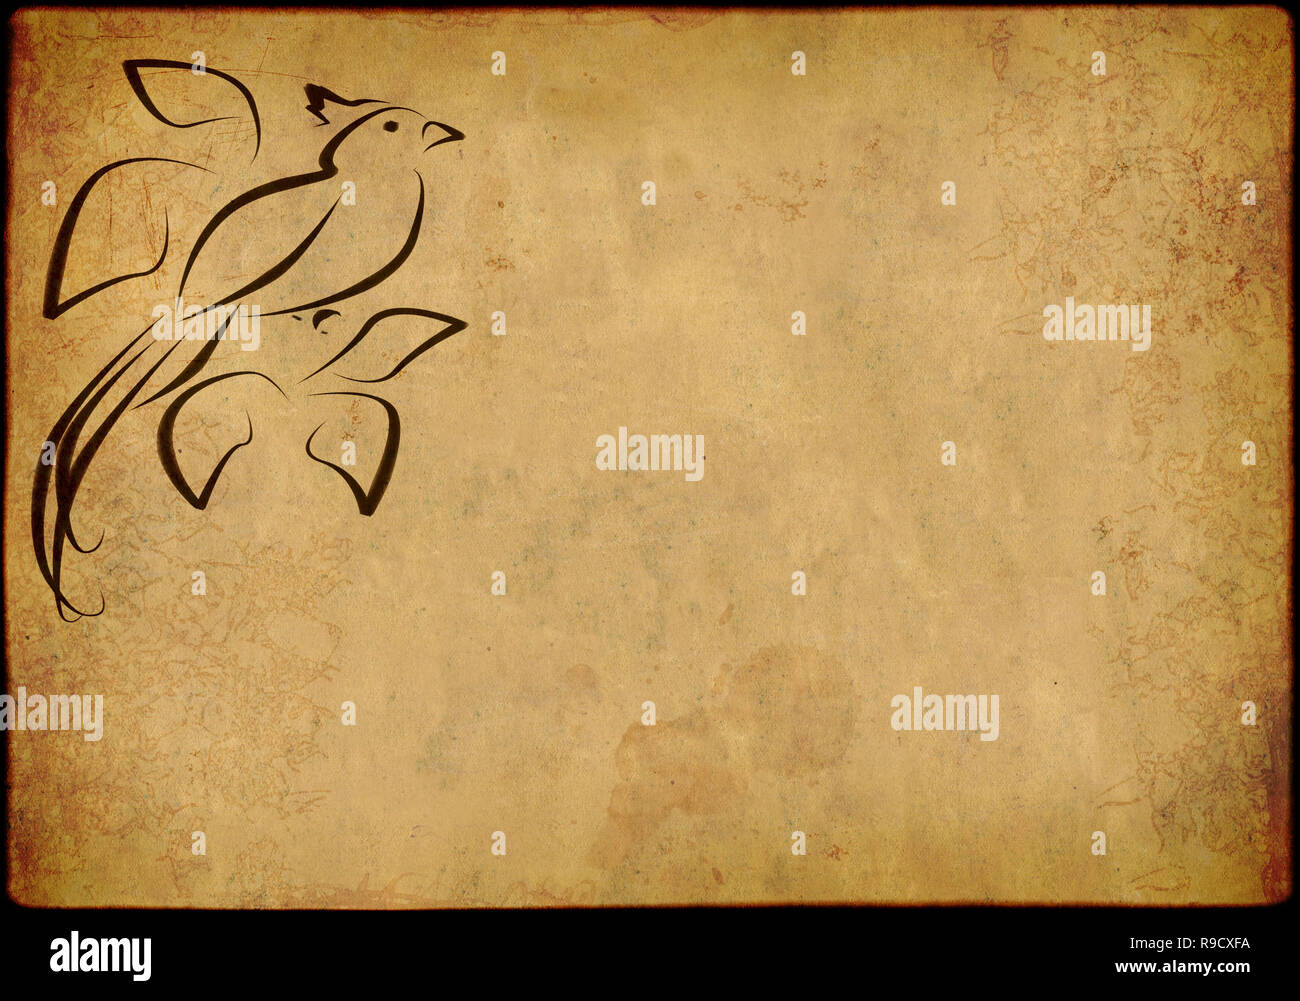 Background in style of an ancient Japanese engraving Stock Photo